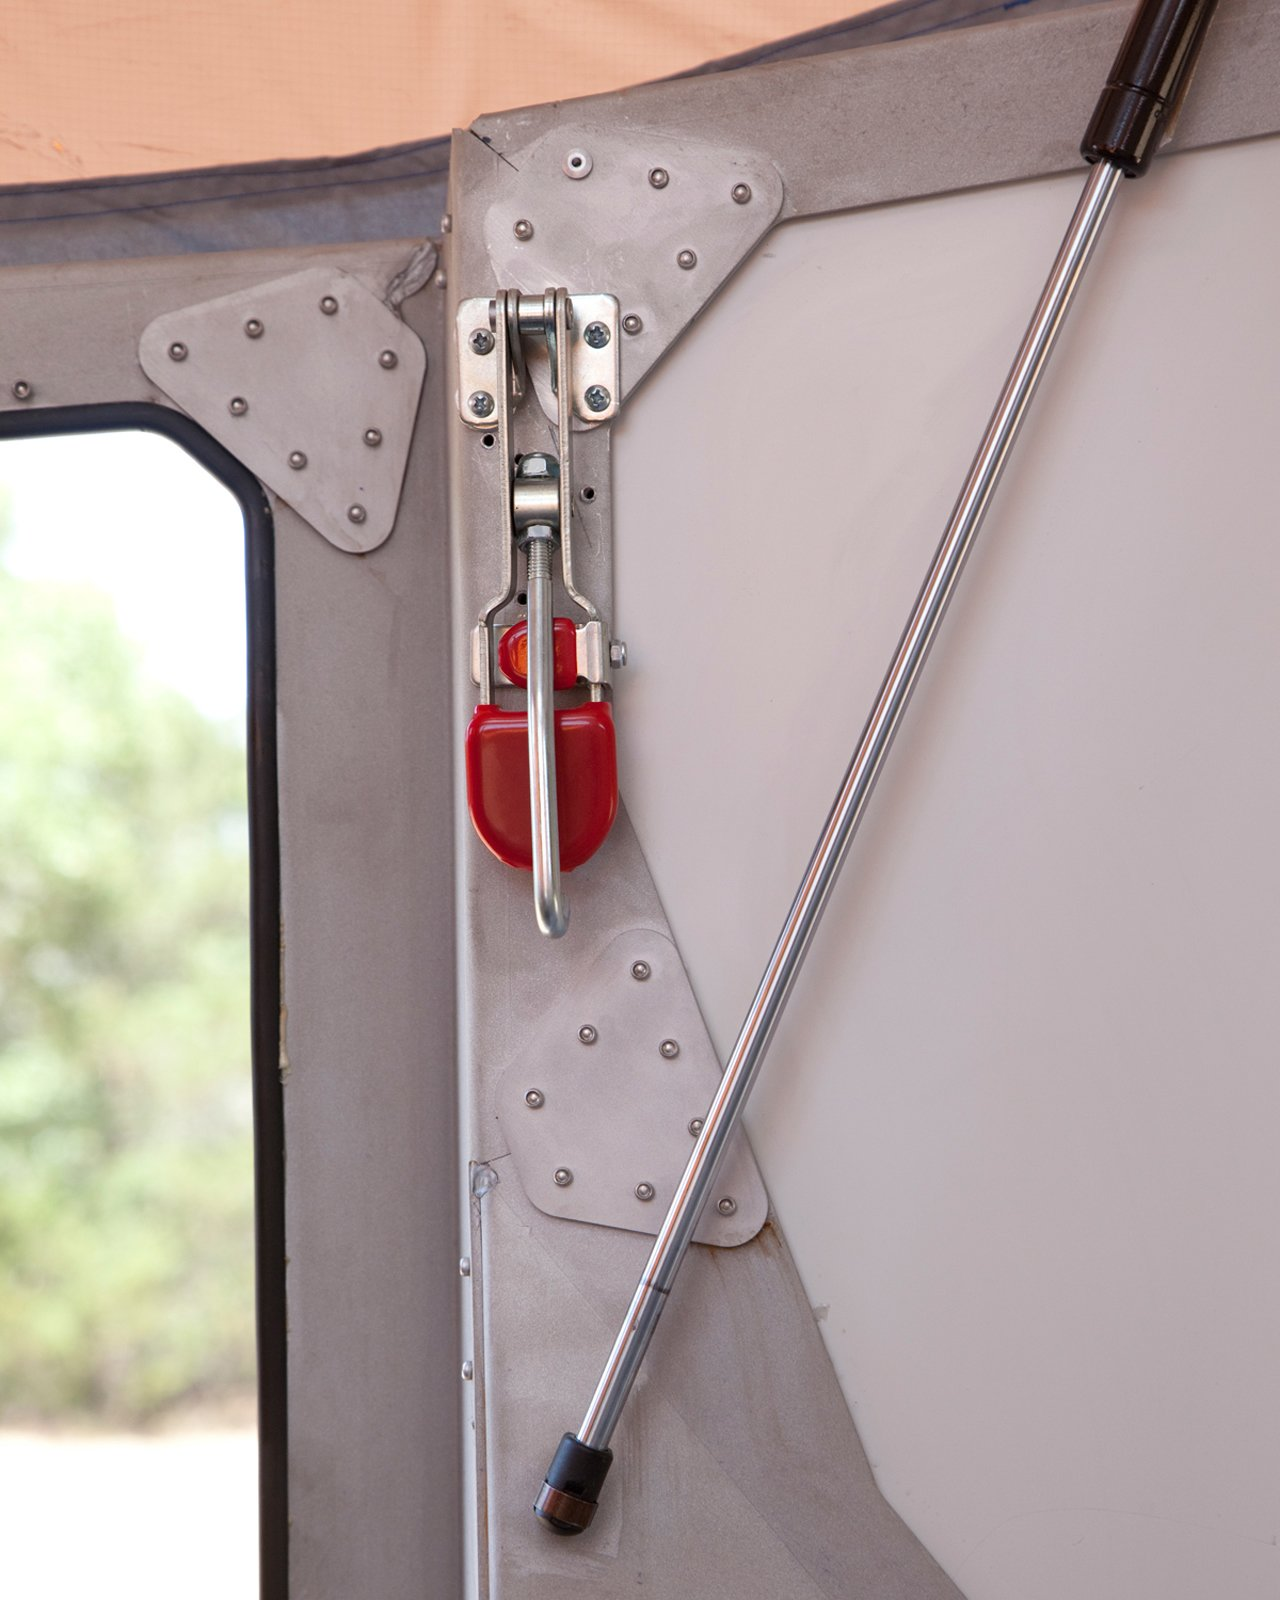 Hooks on the inside (like the mechanism with the red tab) latch into the camper's roof to help hold it down. Throughout the camper, small cricket images are laser-cut into the aluminum frame. The camper's name hints at its shape and is meant to conjure visions of sleeping under the stars with crickets chirping nearby.  Photo 13 of 15 in Modern NASA-Inspired Cricket Trailer